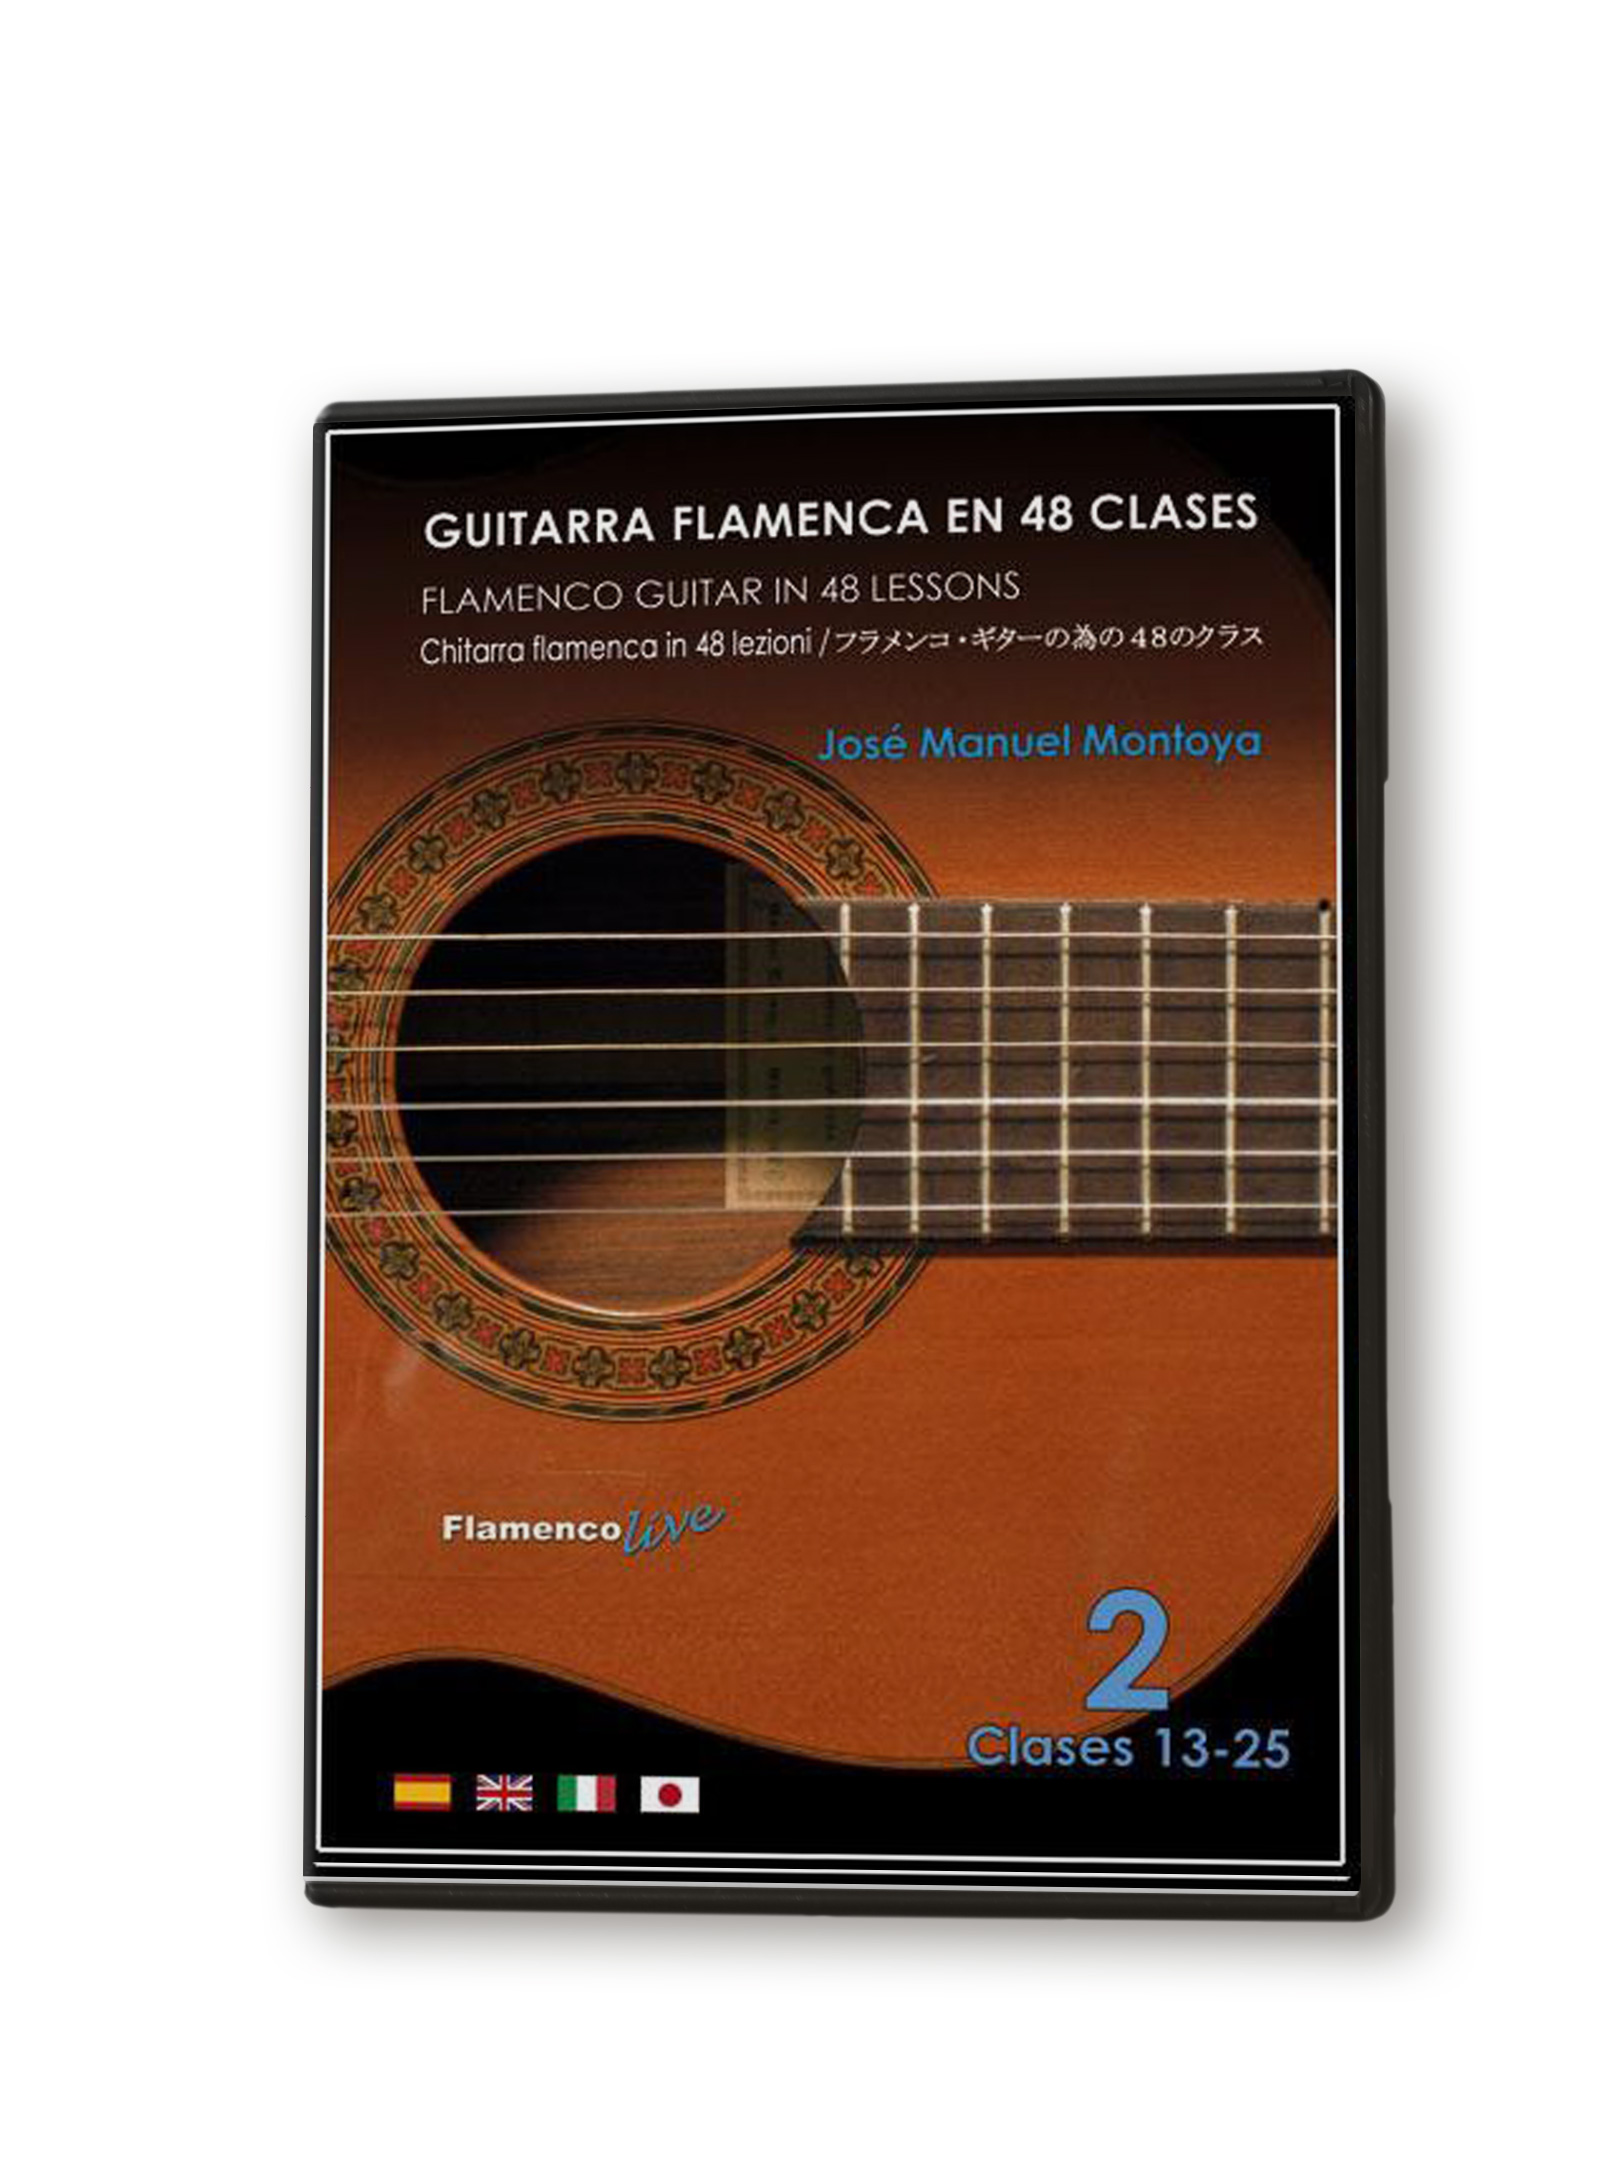 Flamenco guitar in 48 classes DVD 2